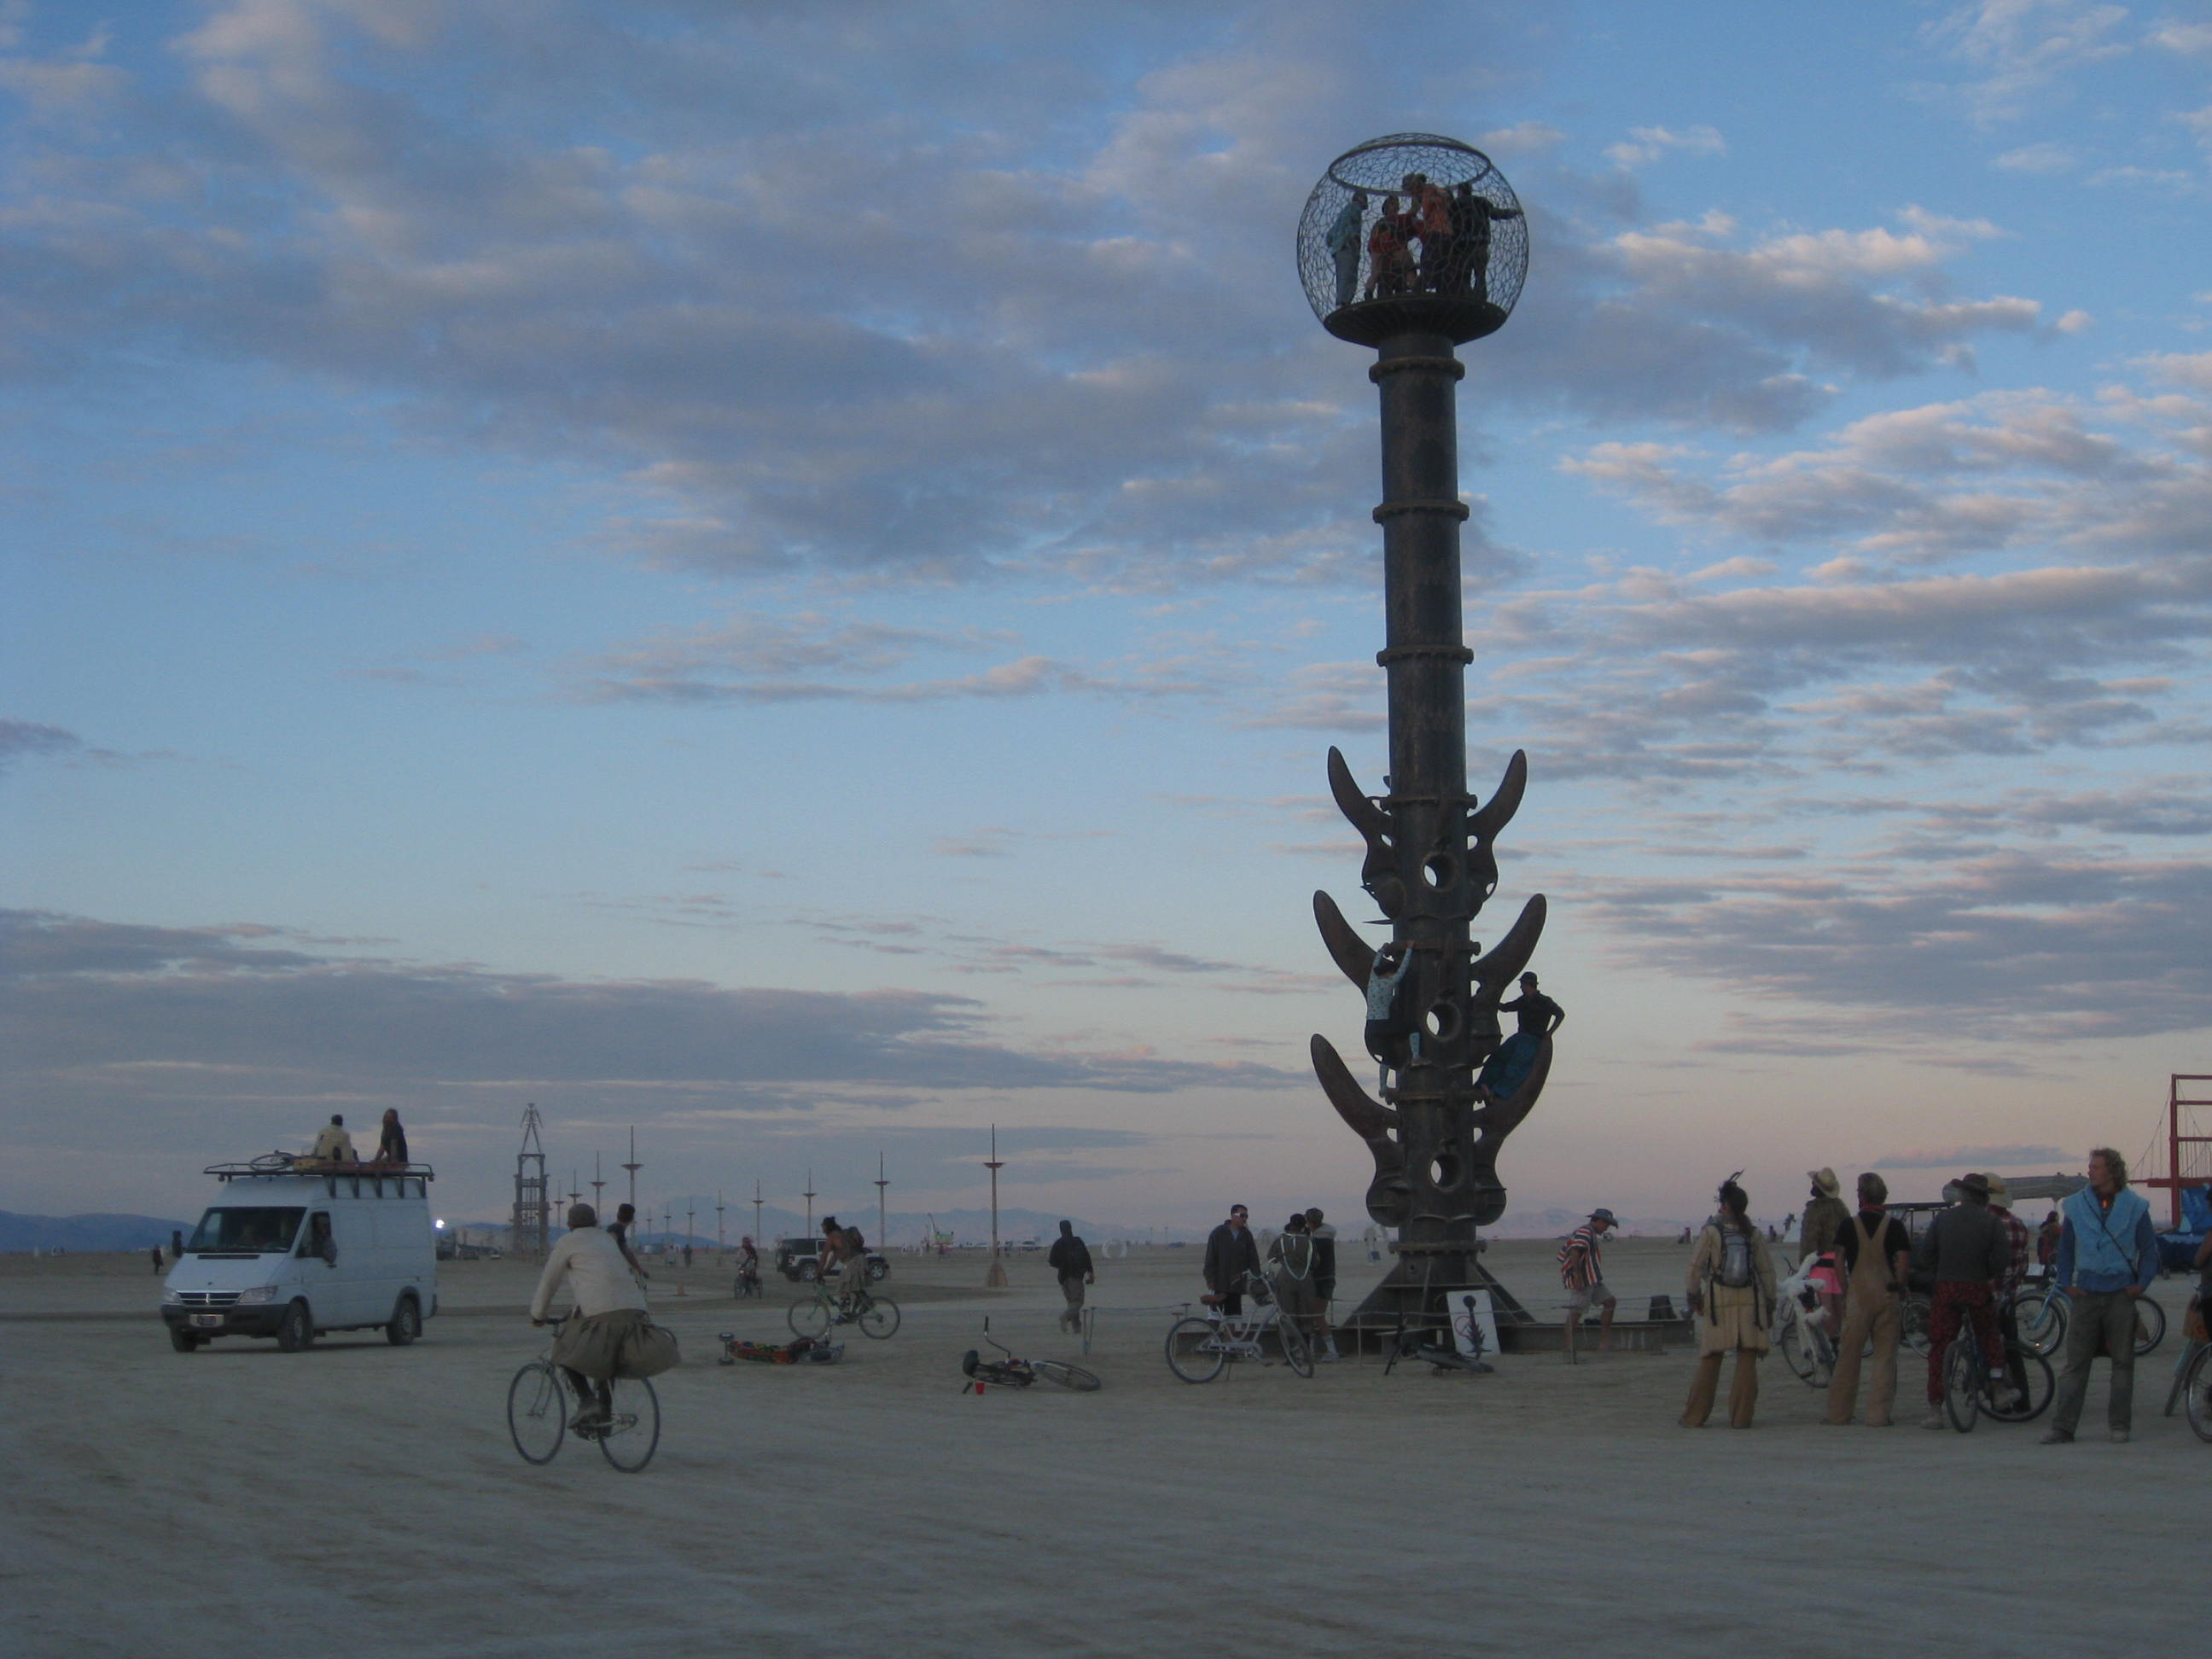 Why I Decided to Go to Burning Man